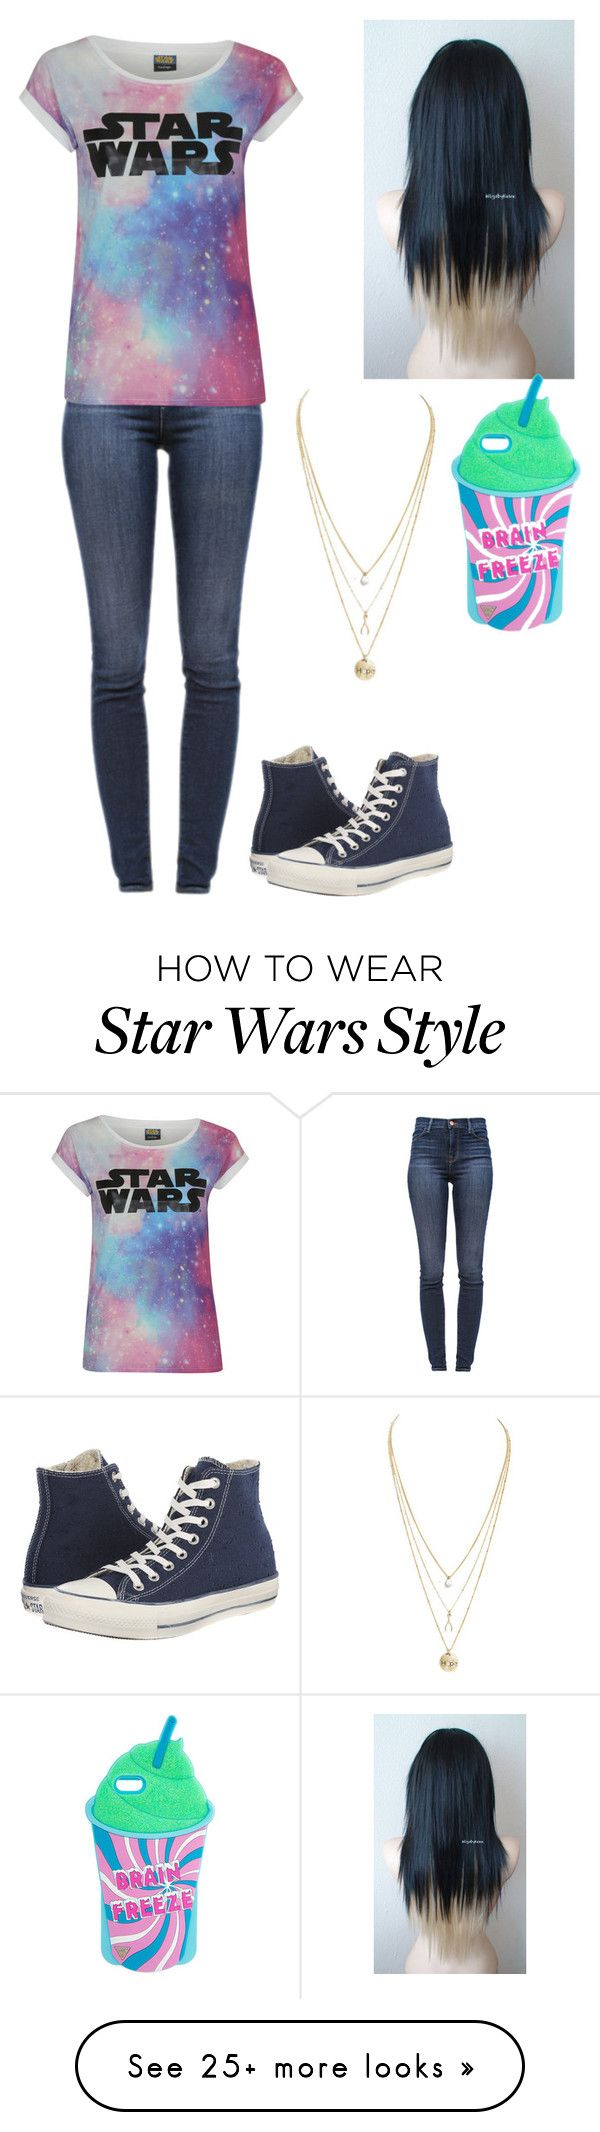 """Untitled #269"" by cupcakes3434 on Polyvore featuring J Brand and Converse"